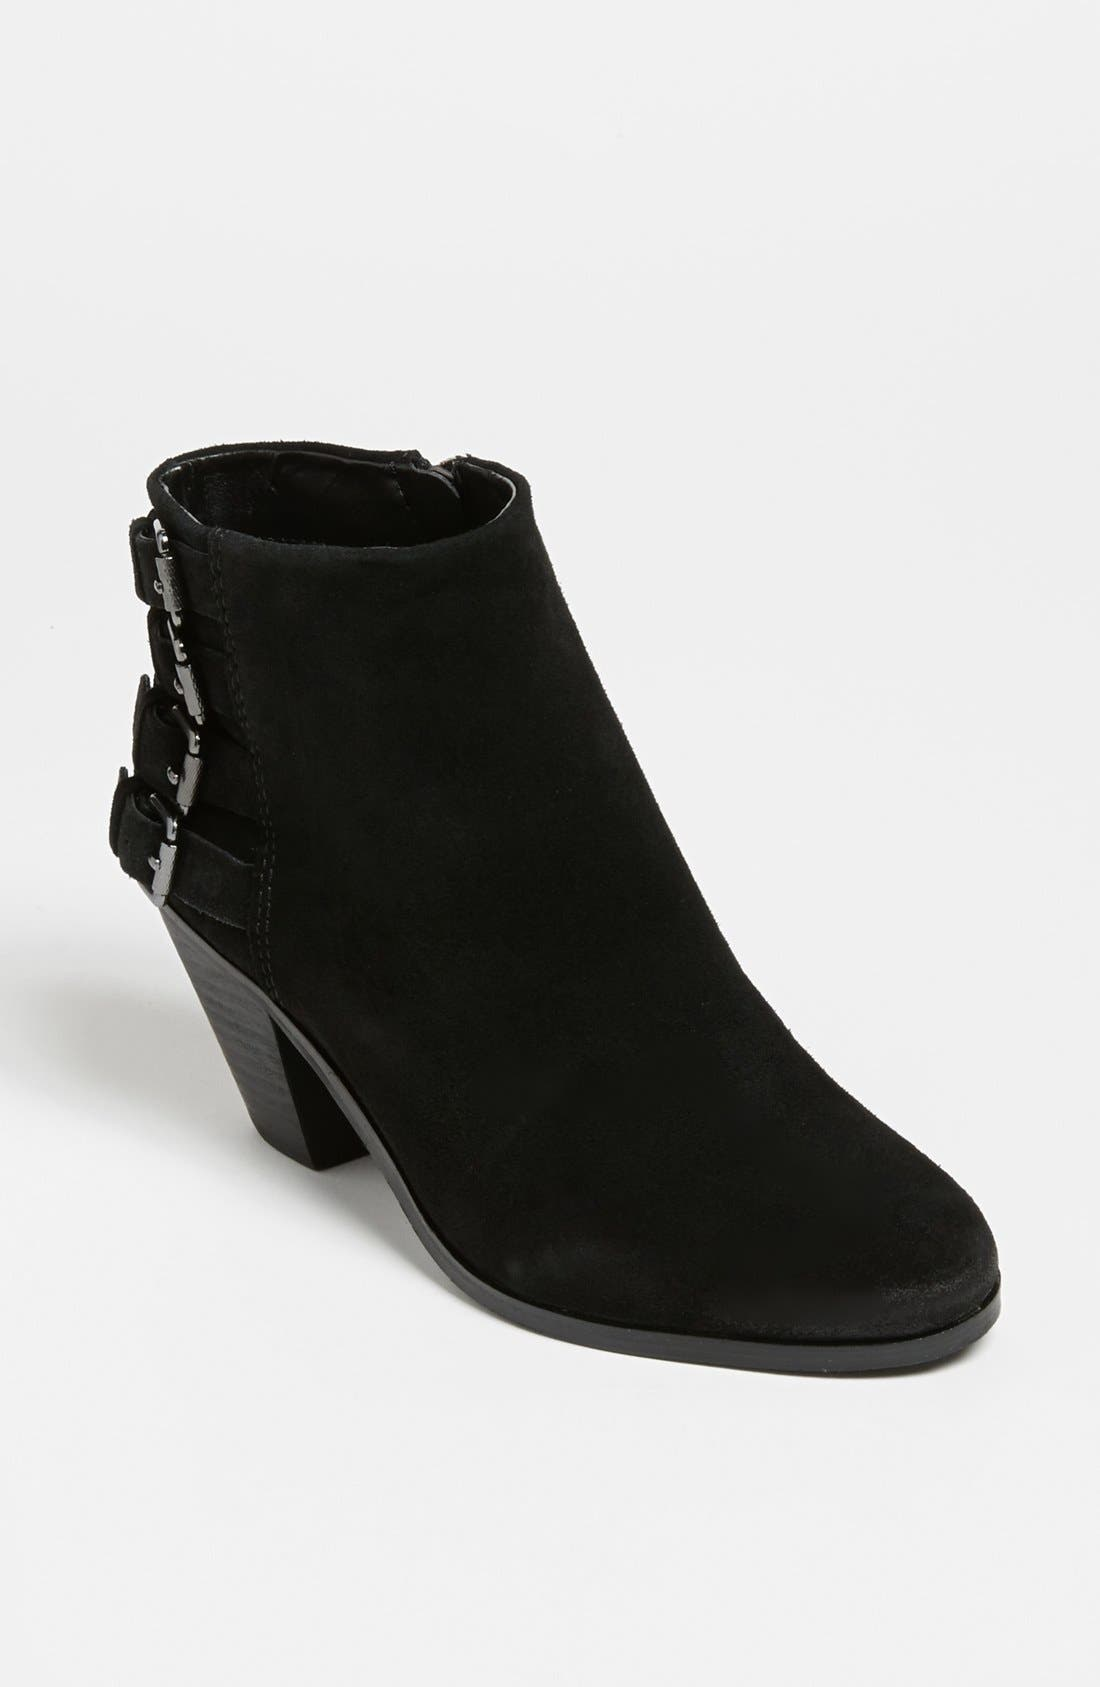 Alternate Image 1 Selected - Sam Edelman 'Lucca' Bootie